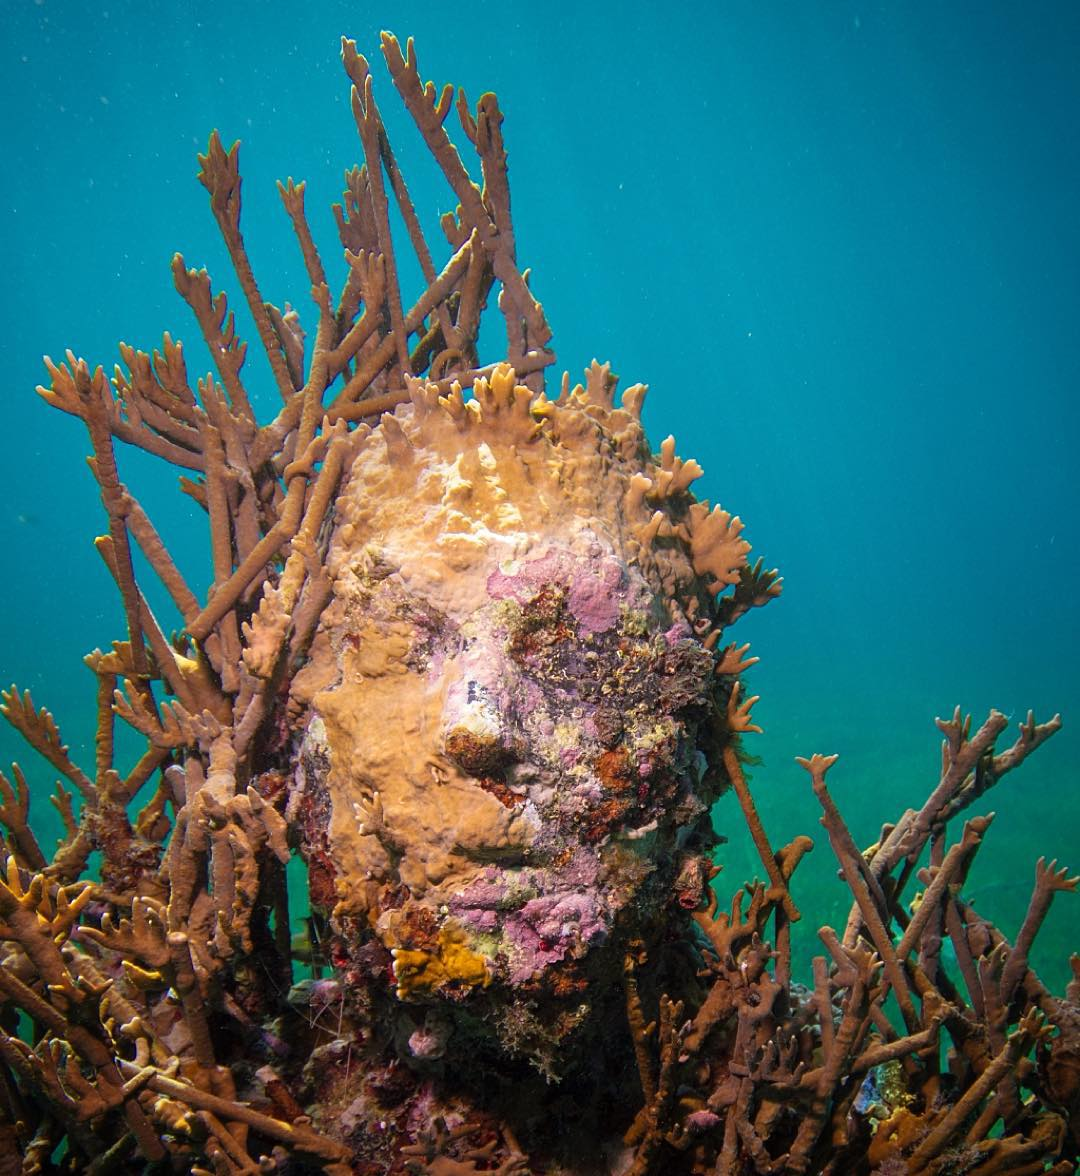 Jason deCaires Taylor Artwork #11